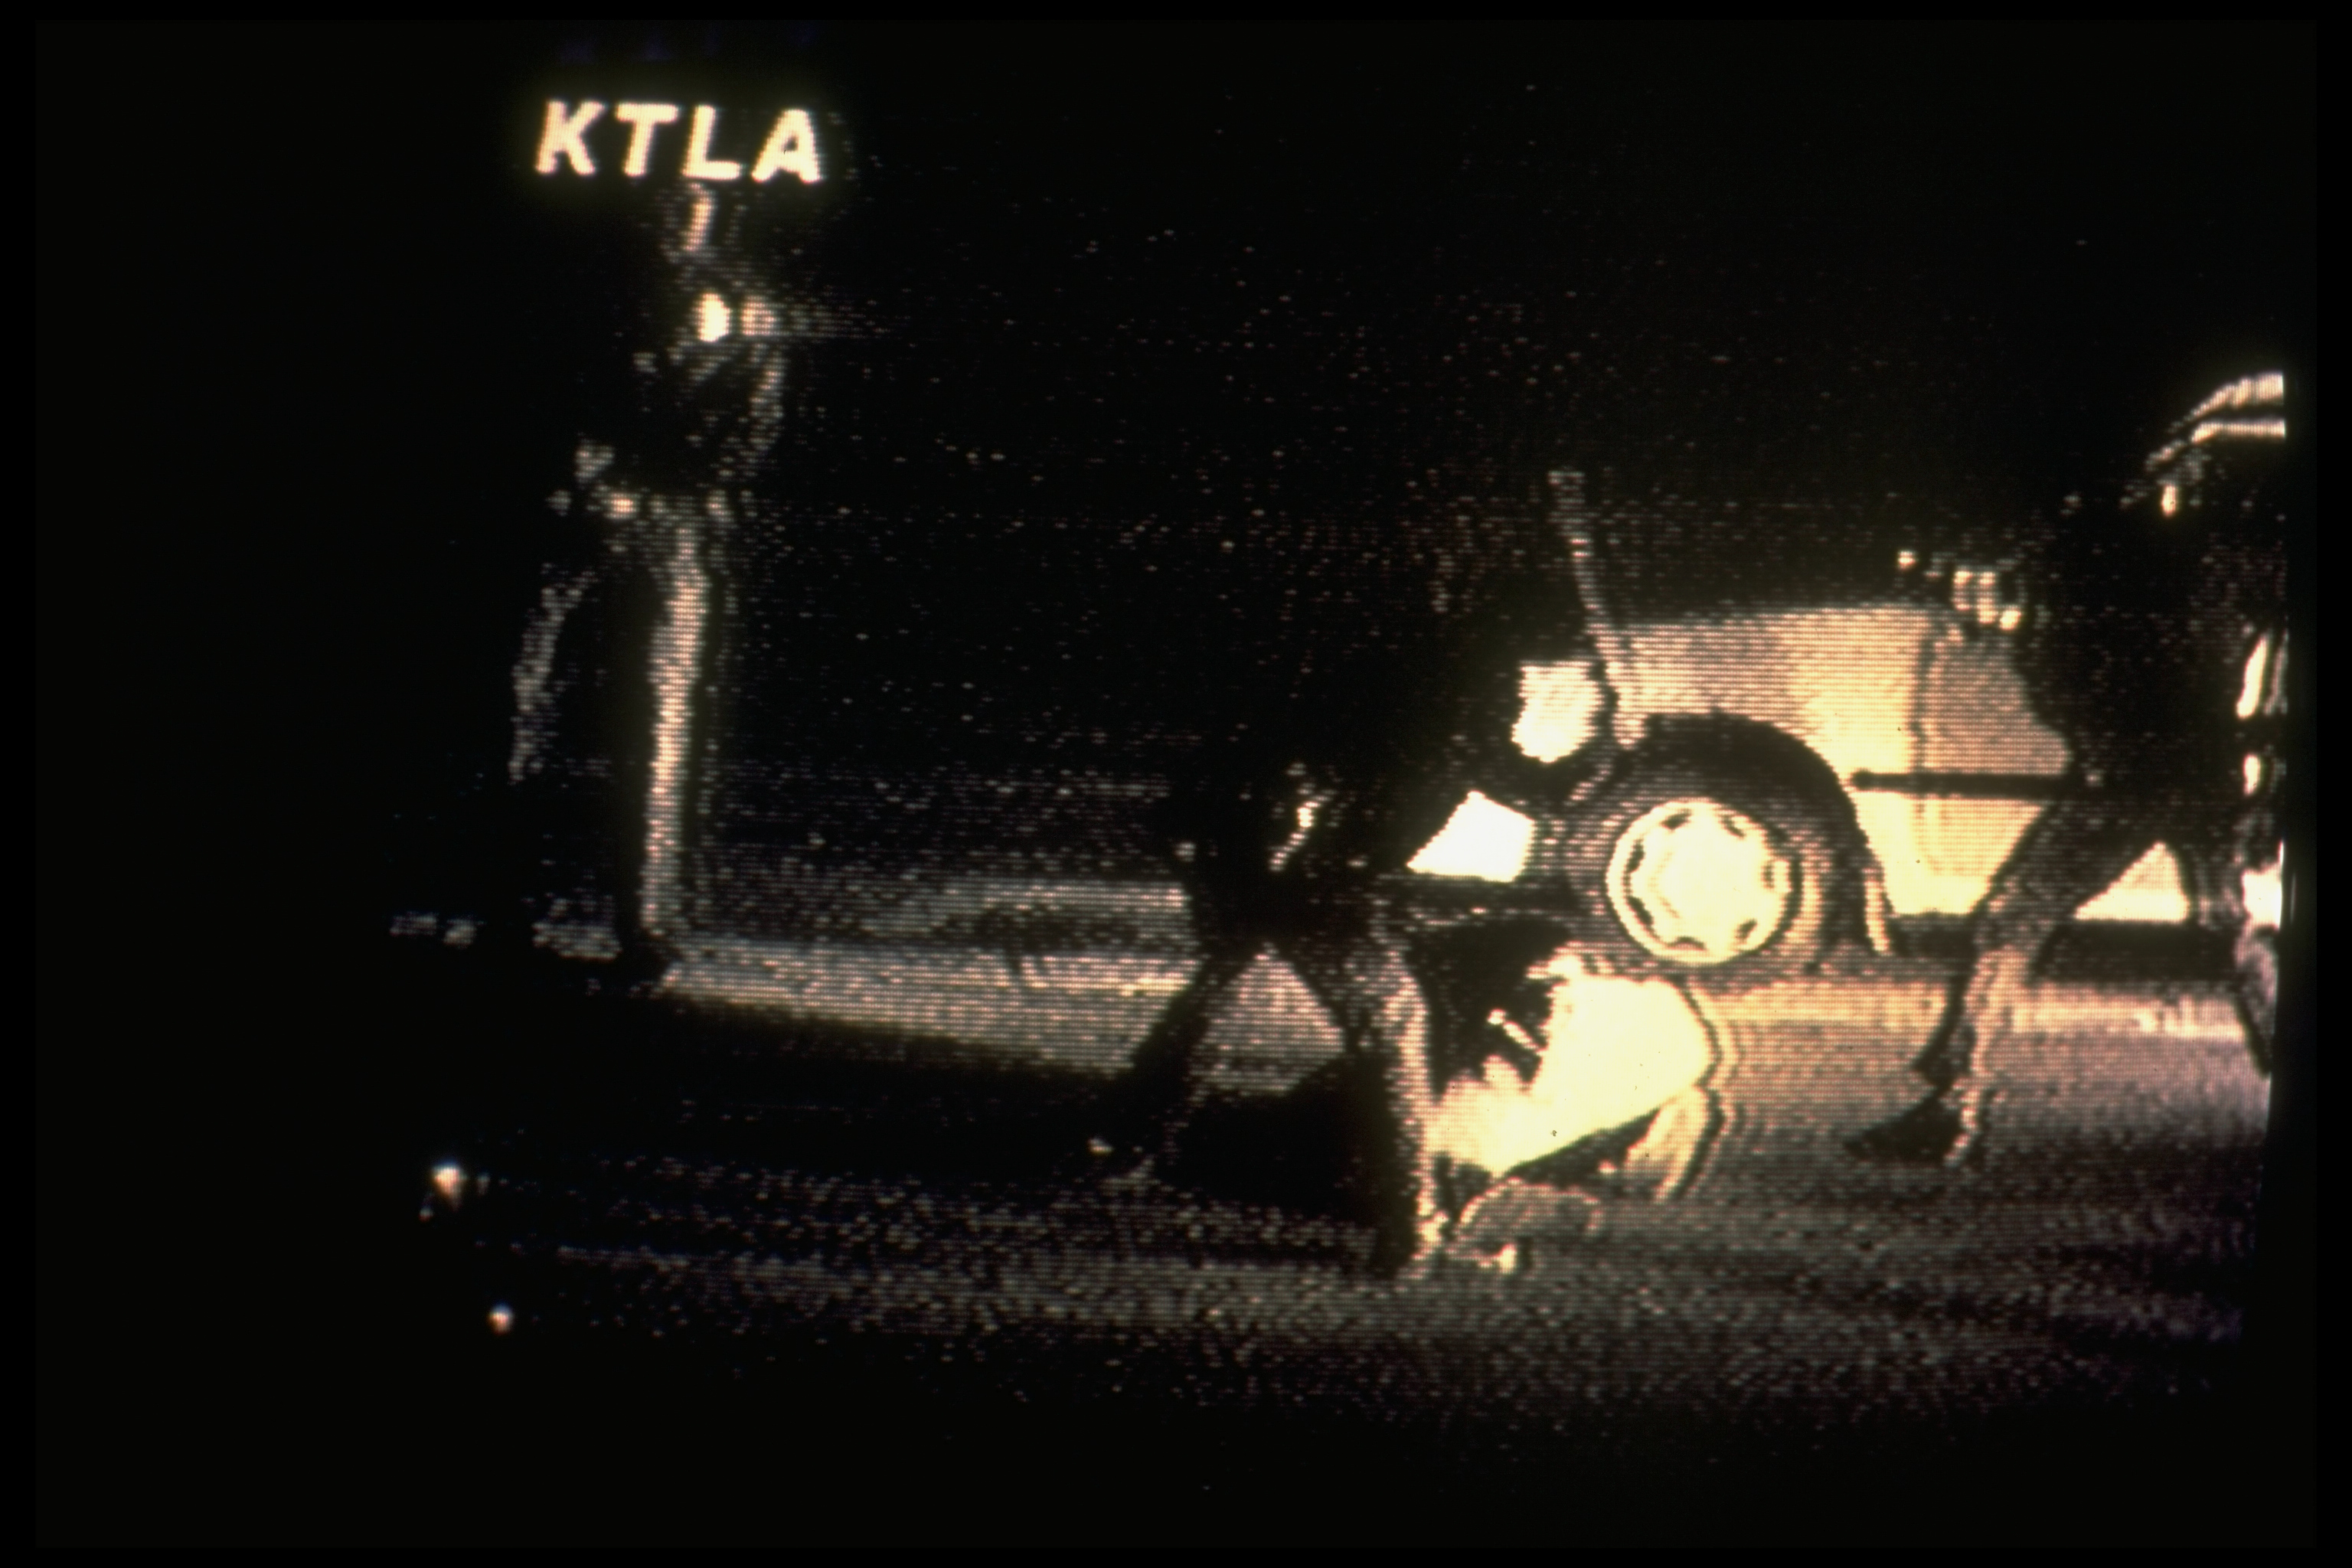 Video image of LA cops beating black motorist Rodney King as he lies on ground; taken by camcorder enthusiast George Holliday fr. window overlooking street.